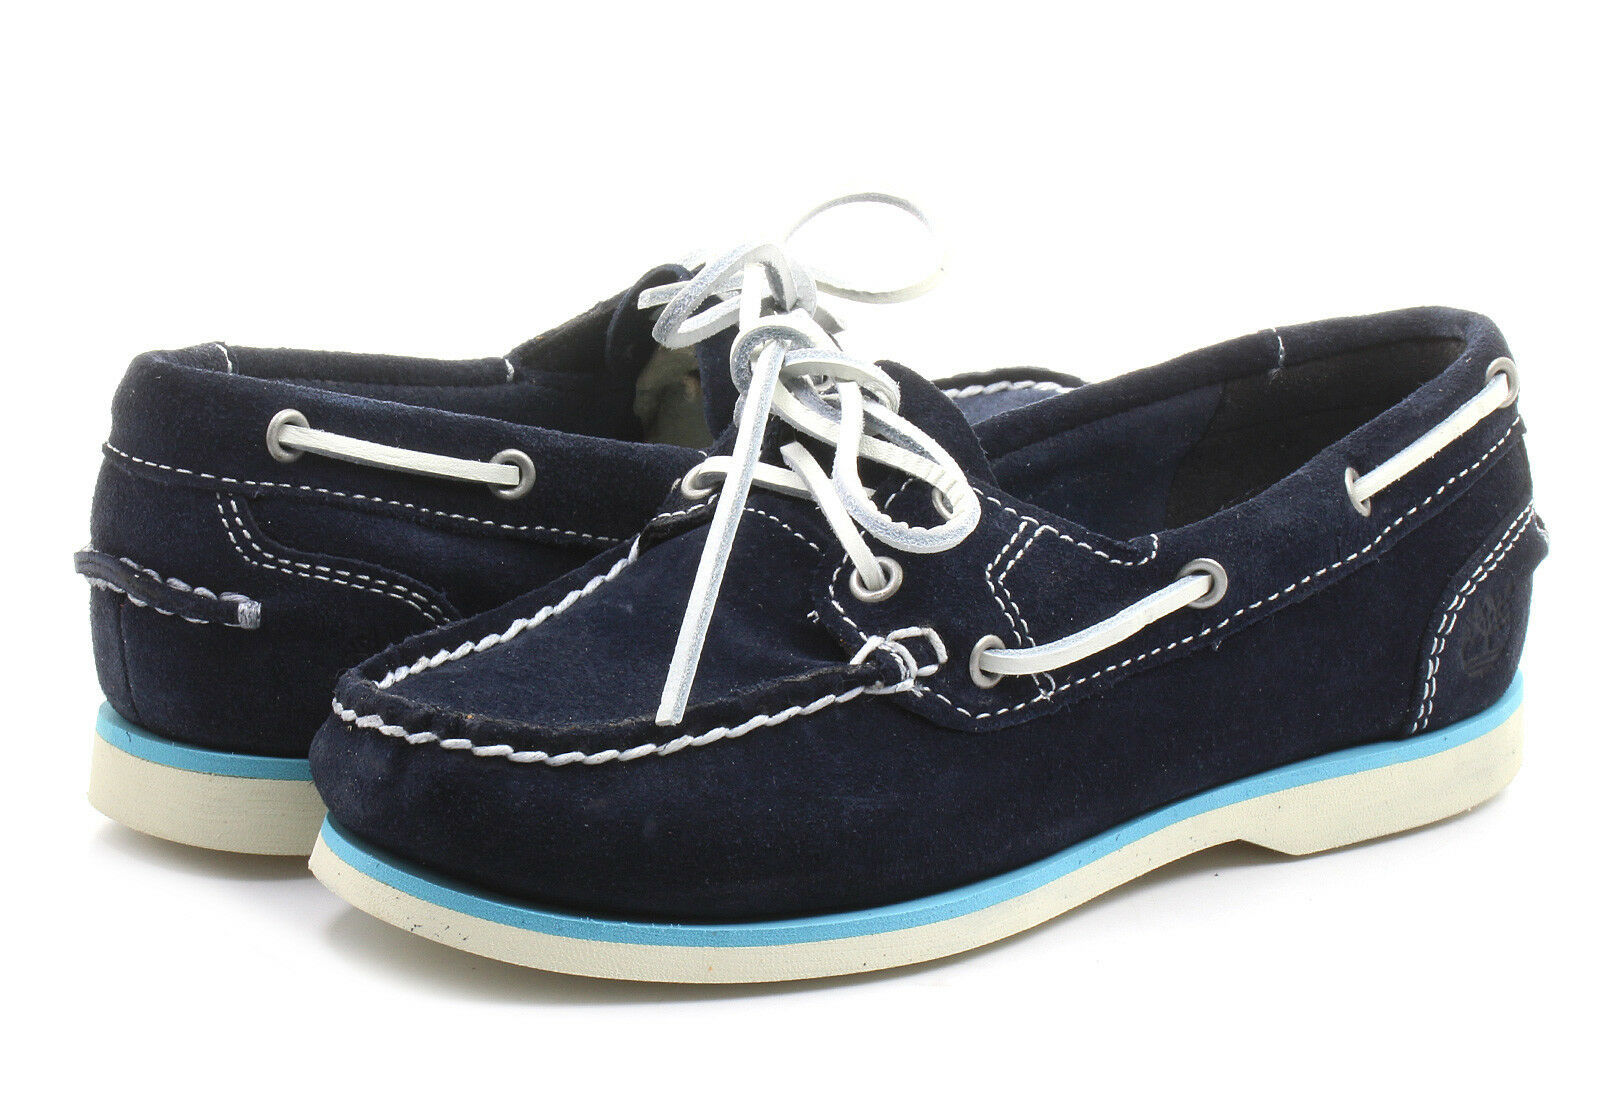 Primary image for NEW! TIMBERLAND WOMEN'S EARTHKEEPERS CLASSIC NAVY BLUE SUEDE BOAT SHOES 8223A